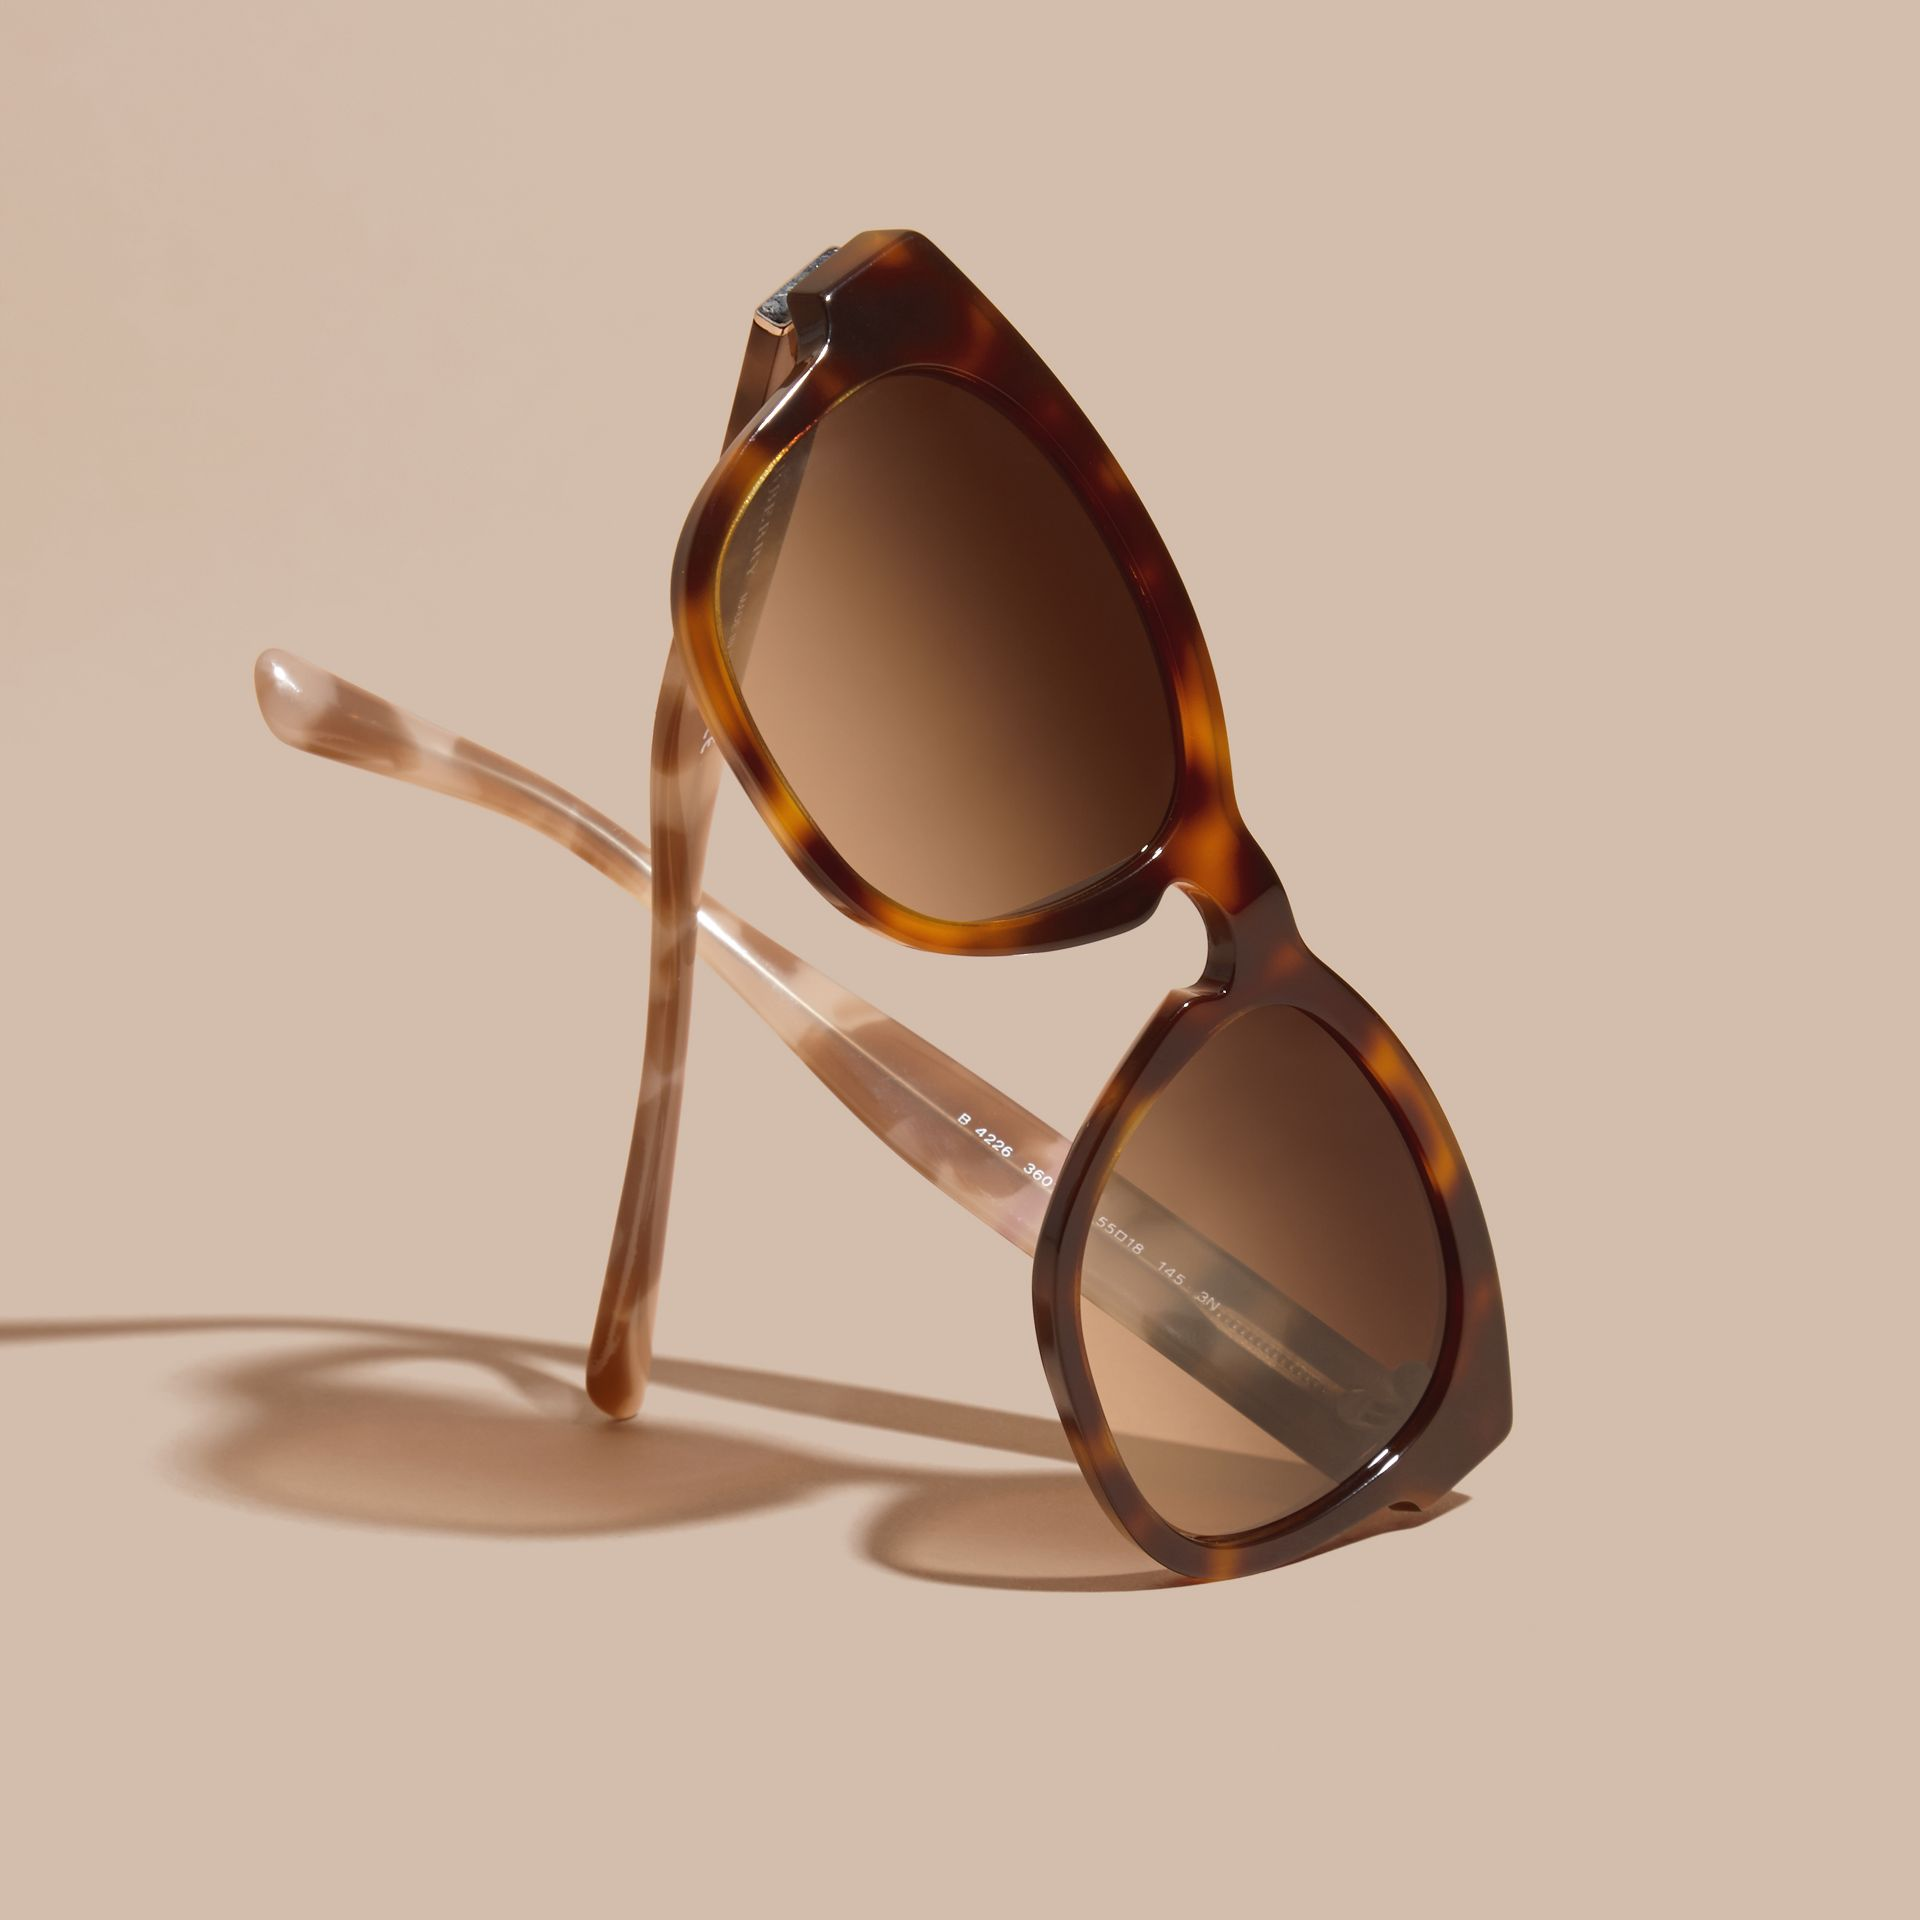 Light russet brown Check and Camouflage Detail Square Frame Sunglasses Light Russet Brown - gallery image 3